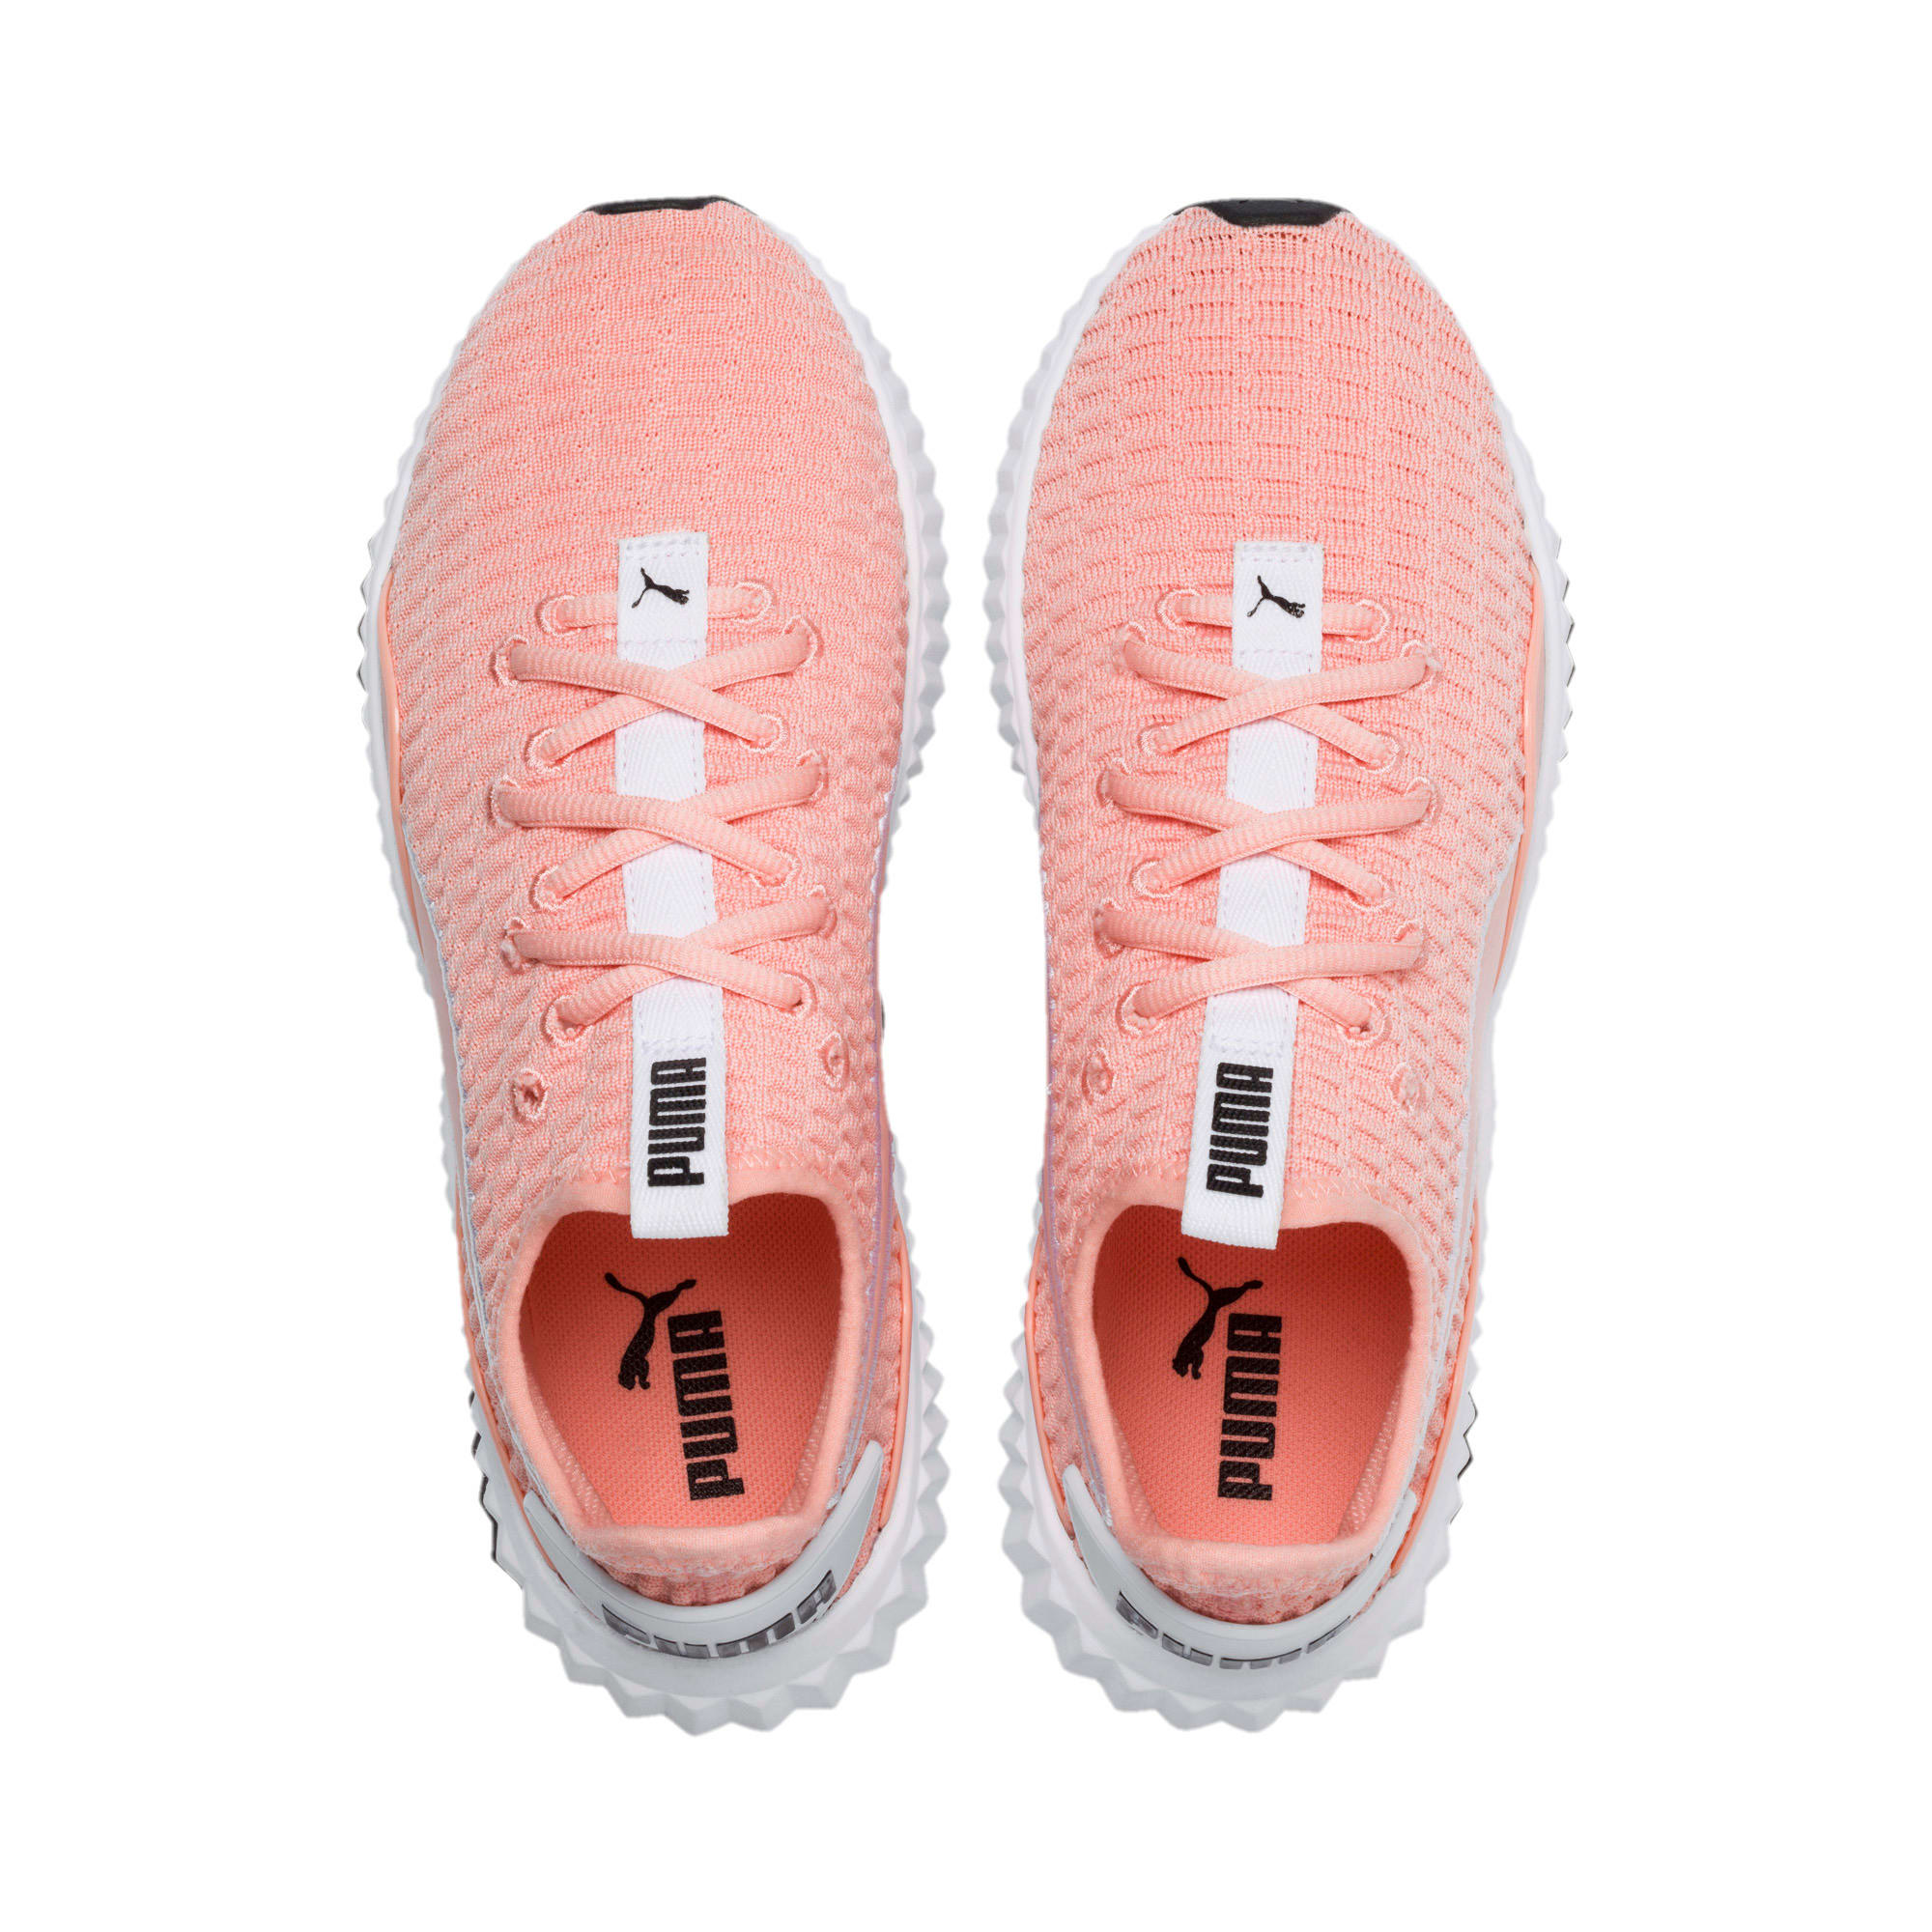 Thumbnail 7 of Defy Women's Training Shoes, Peach Bud-Puma White, medium